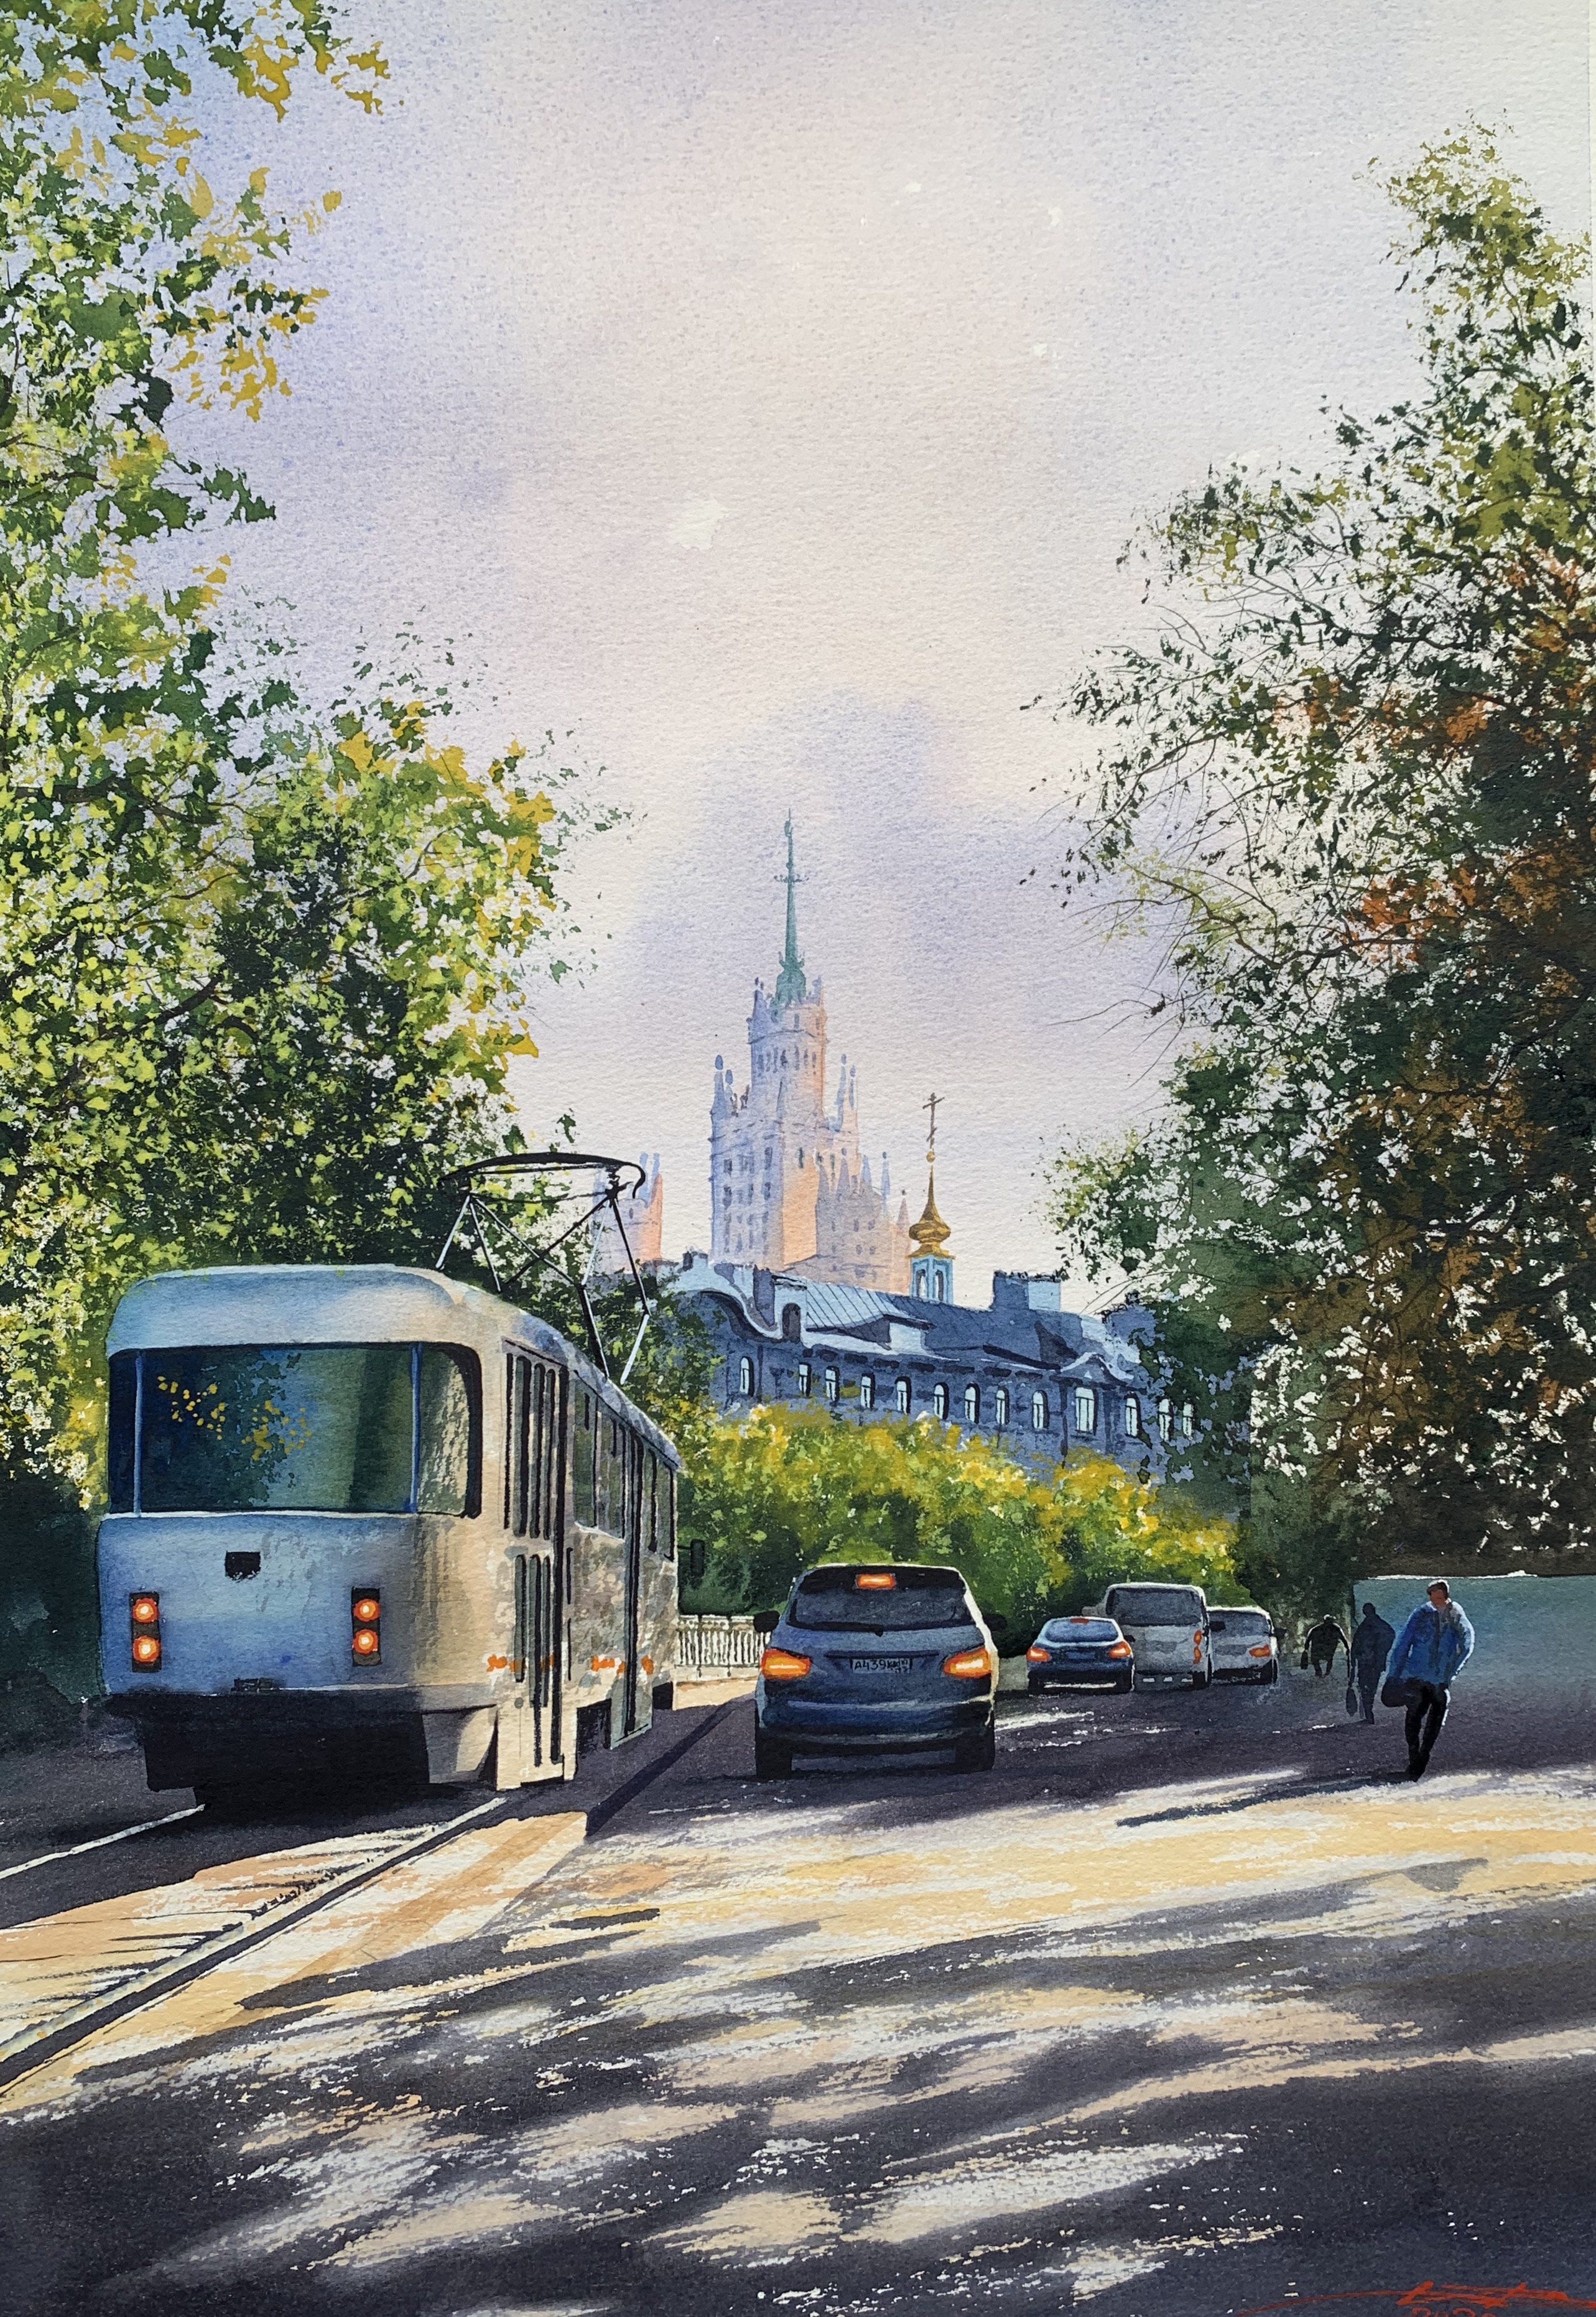 Moscow tram 38x56 cm 290$